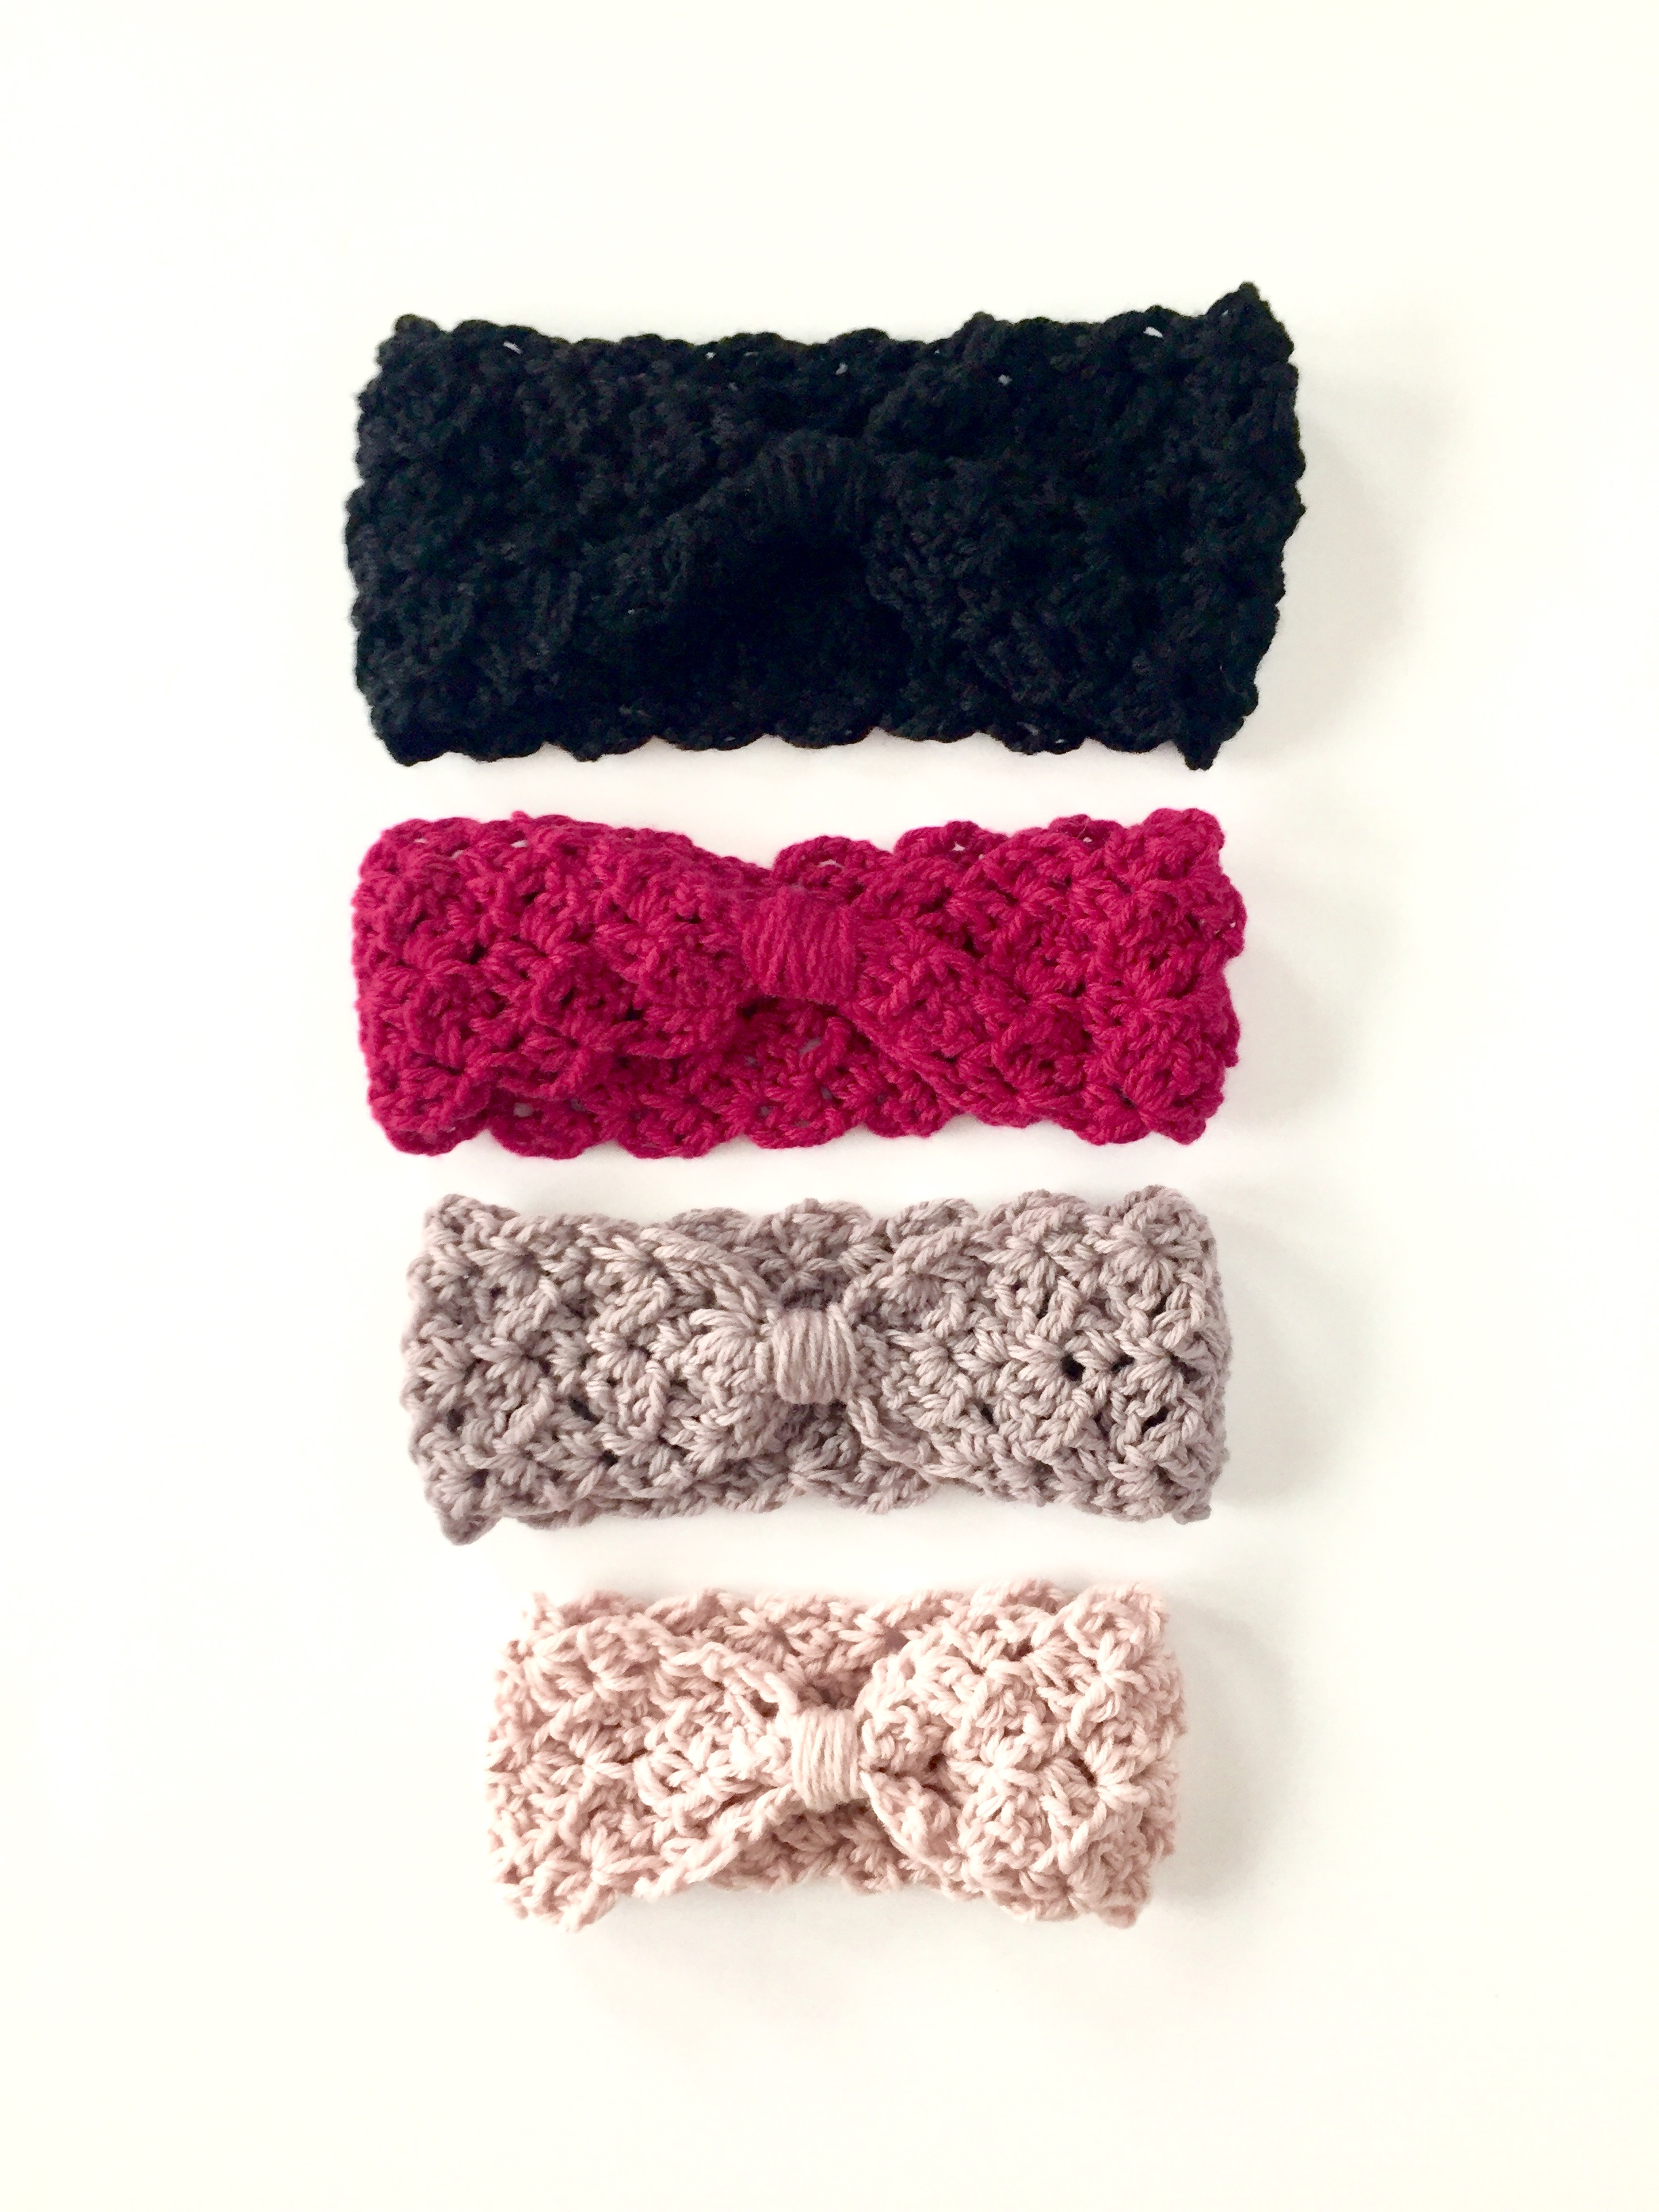 queens-lace-ear-warmers-by-little-monkeys-design-crochet-with-merino-wool